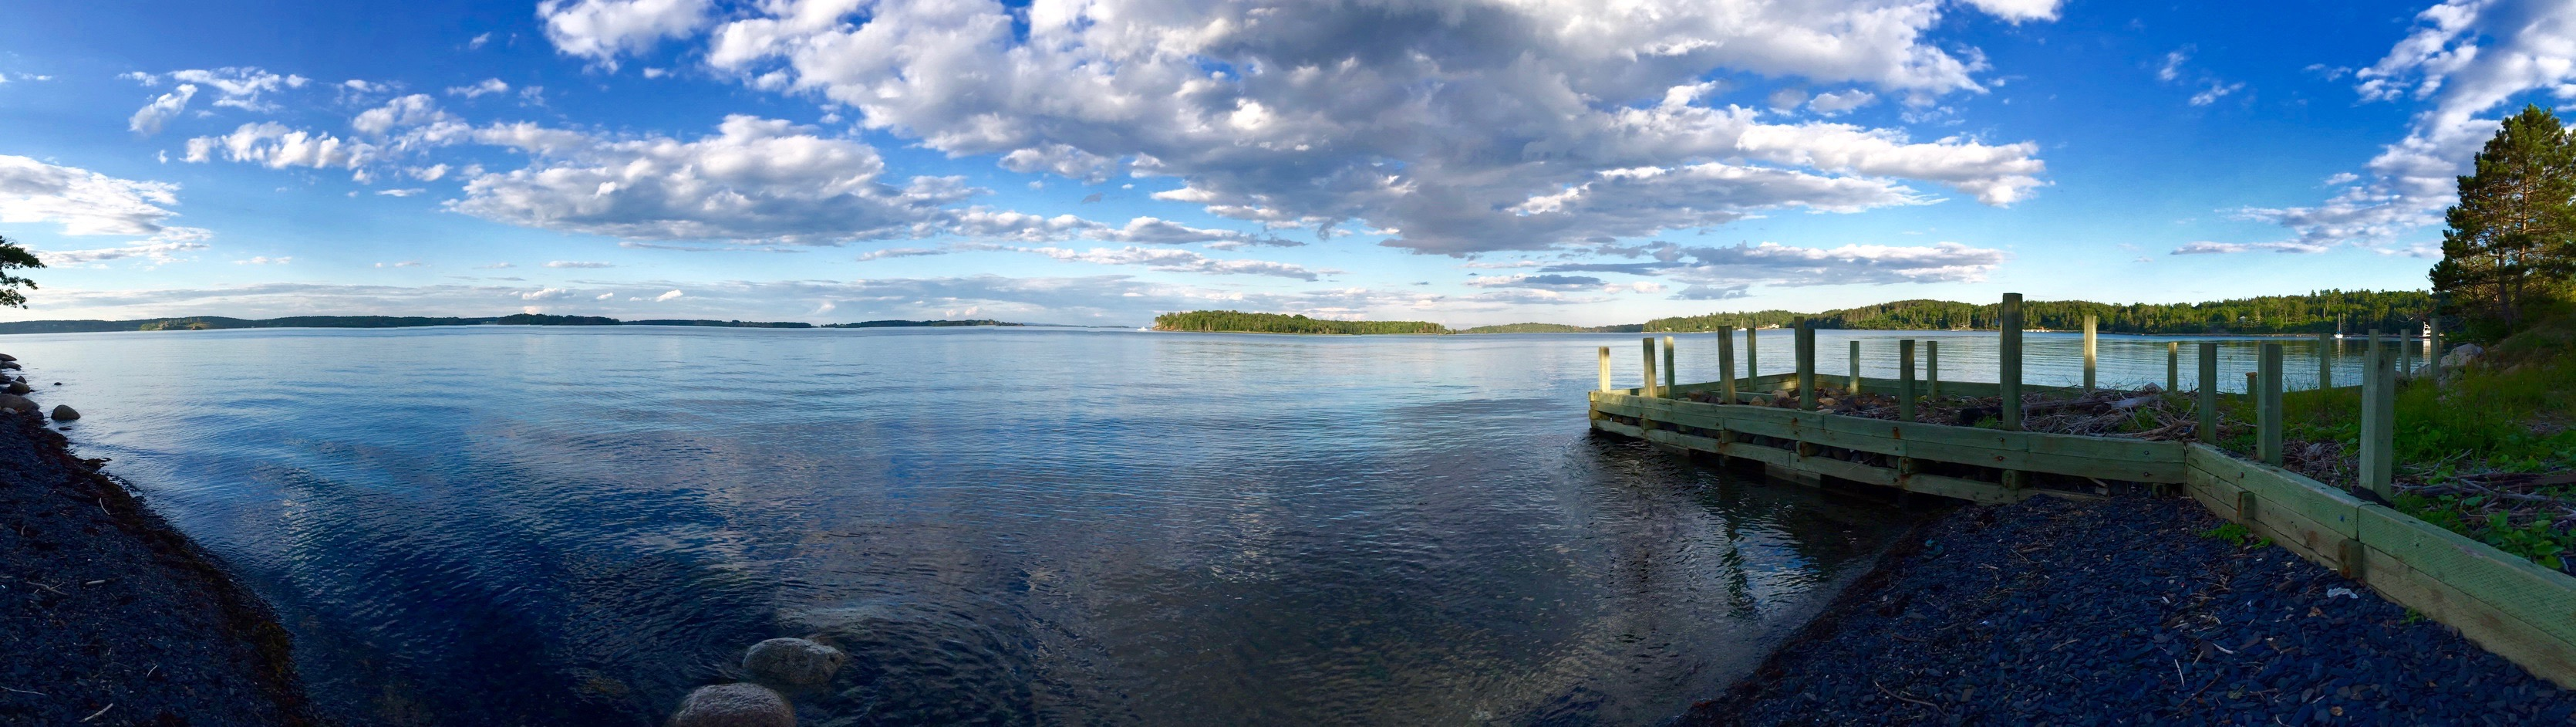 A dock by Mahone Bay near Lunenburg, Nova Scotia [OC] [3340 × 942]